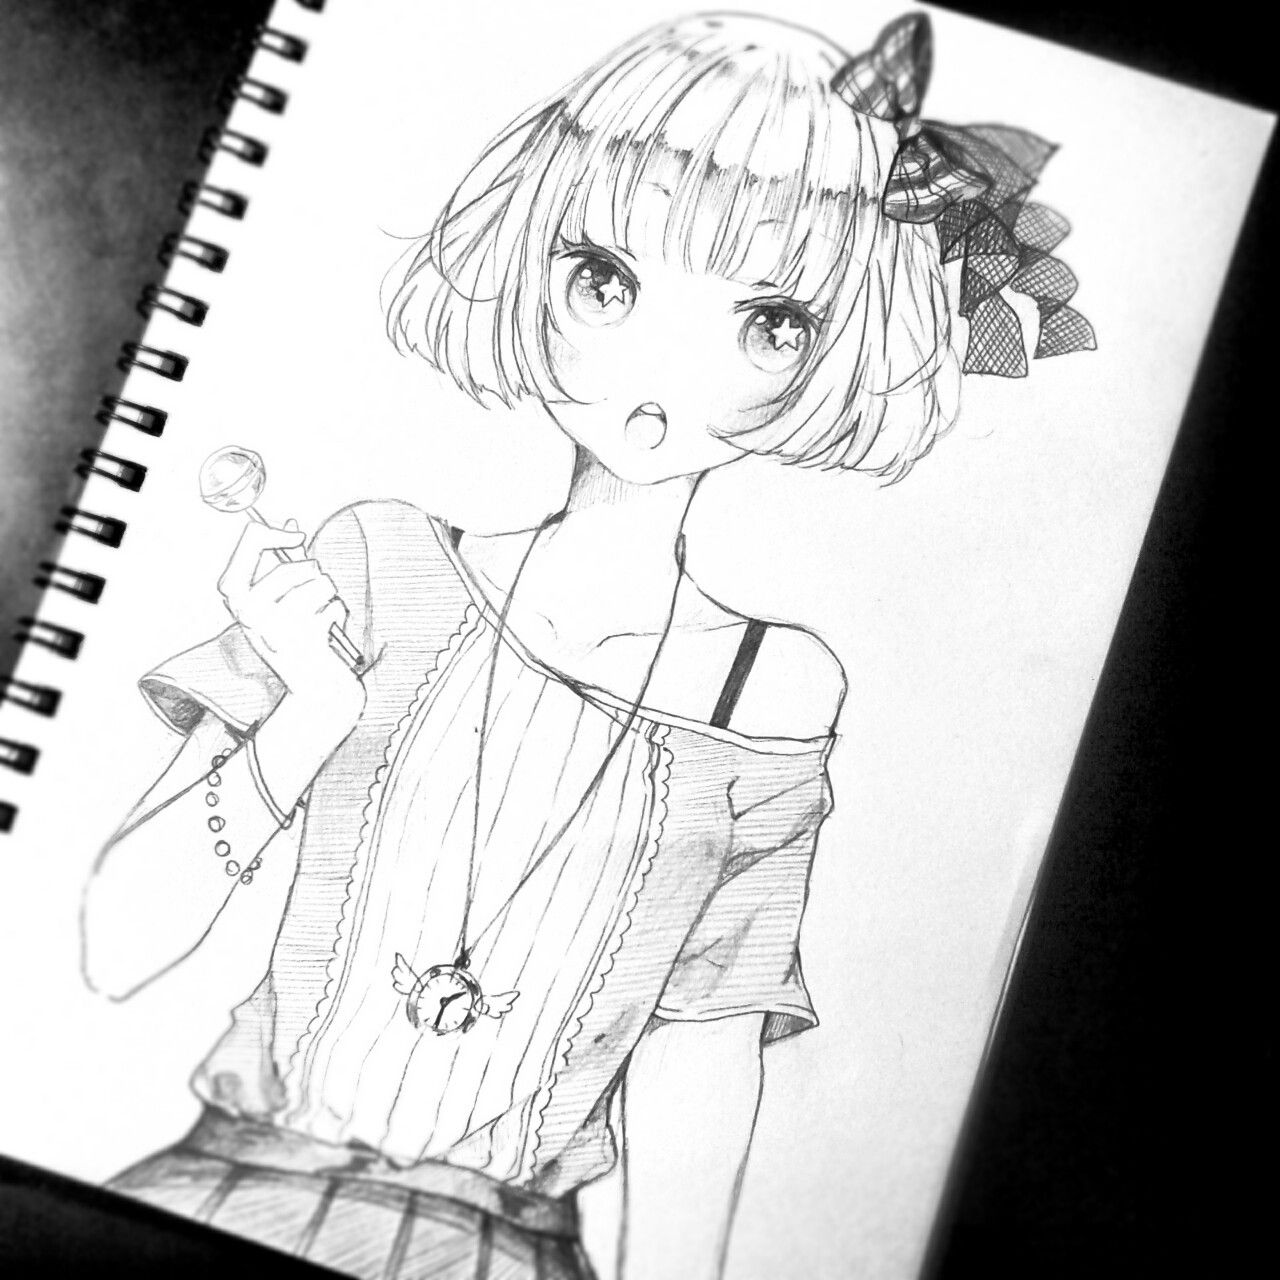 Anime art ✮ anime girl short hair hair bow